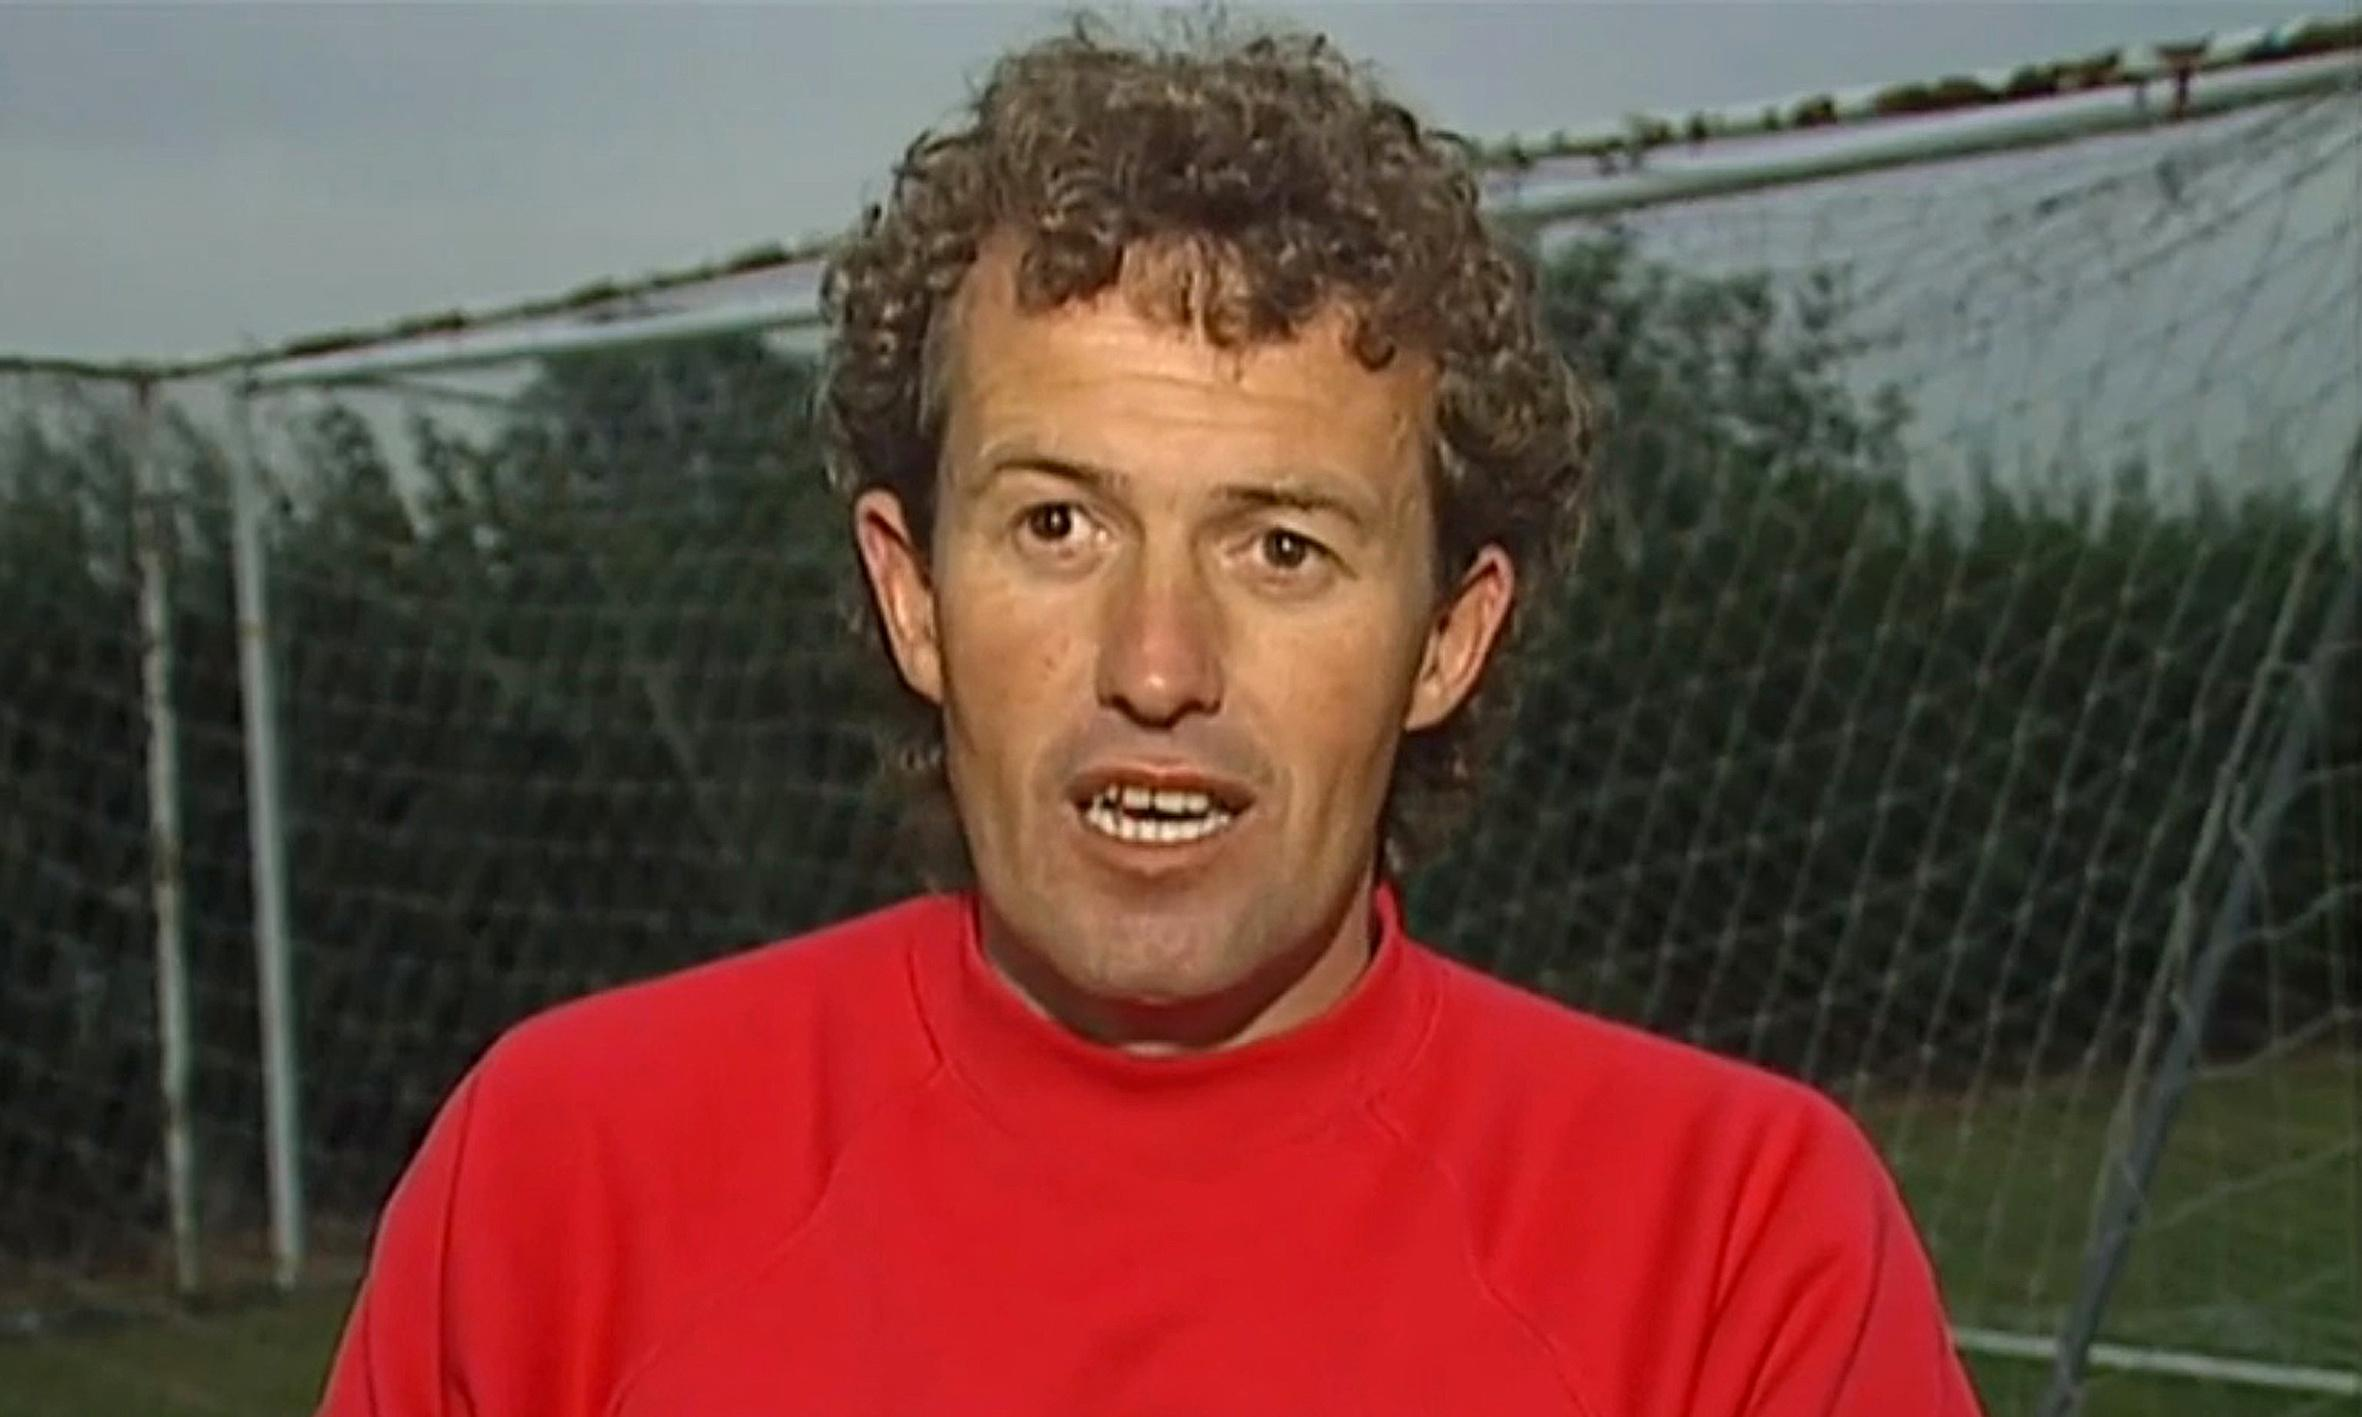 Crewe agree first settlement with Barry Bennell victim after U-turn